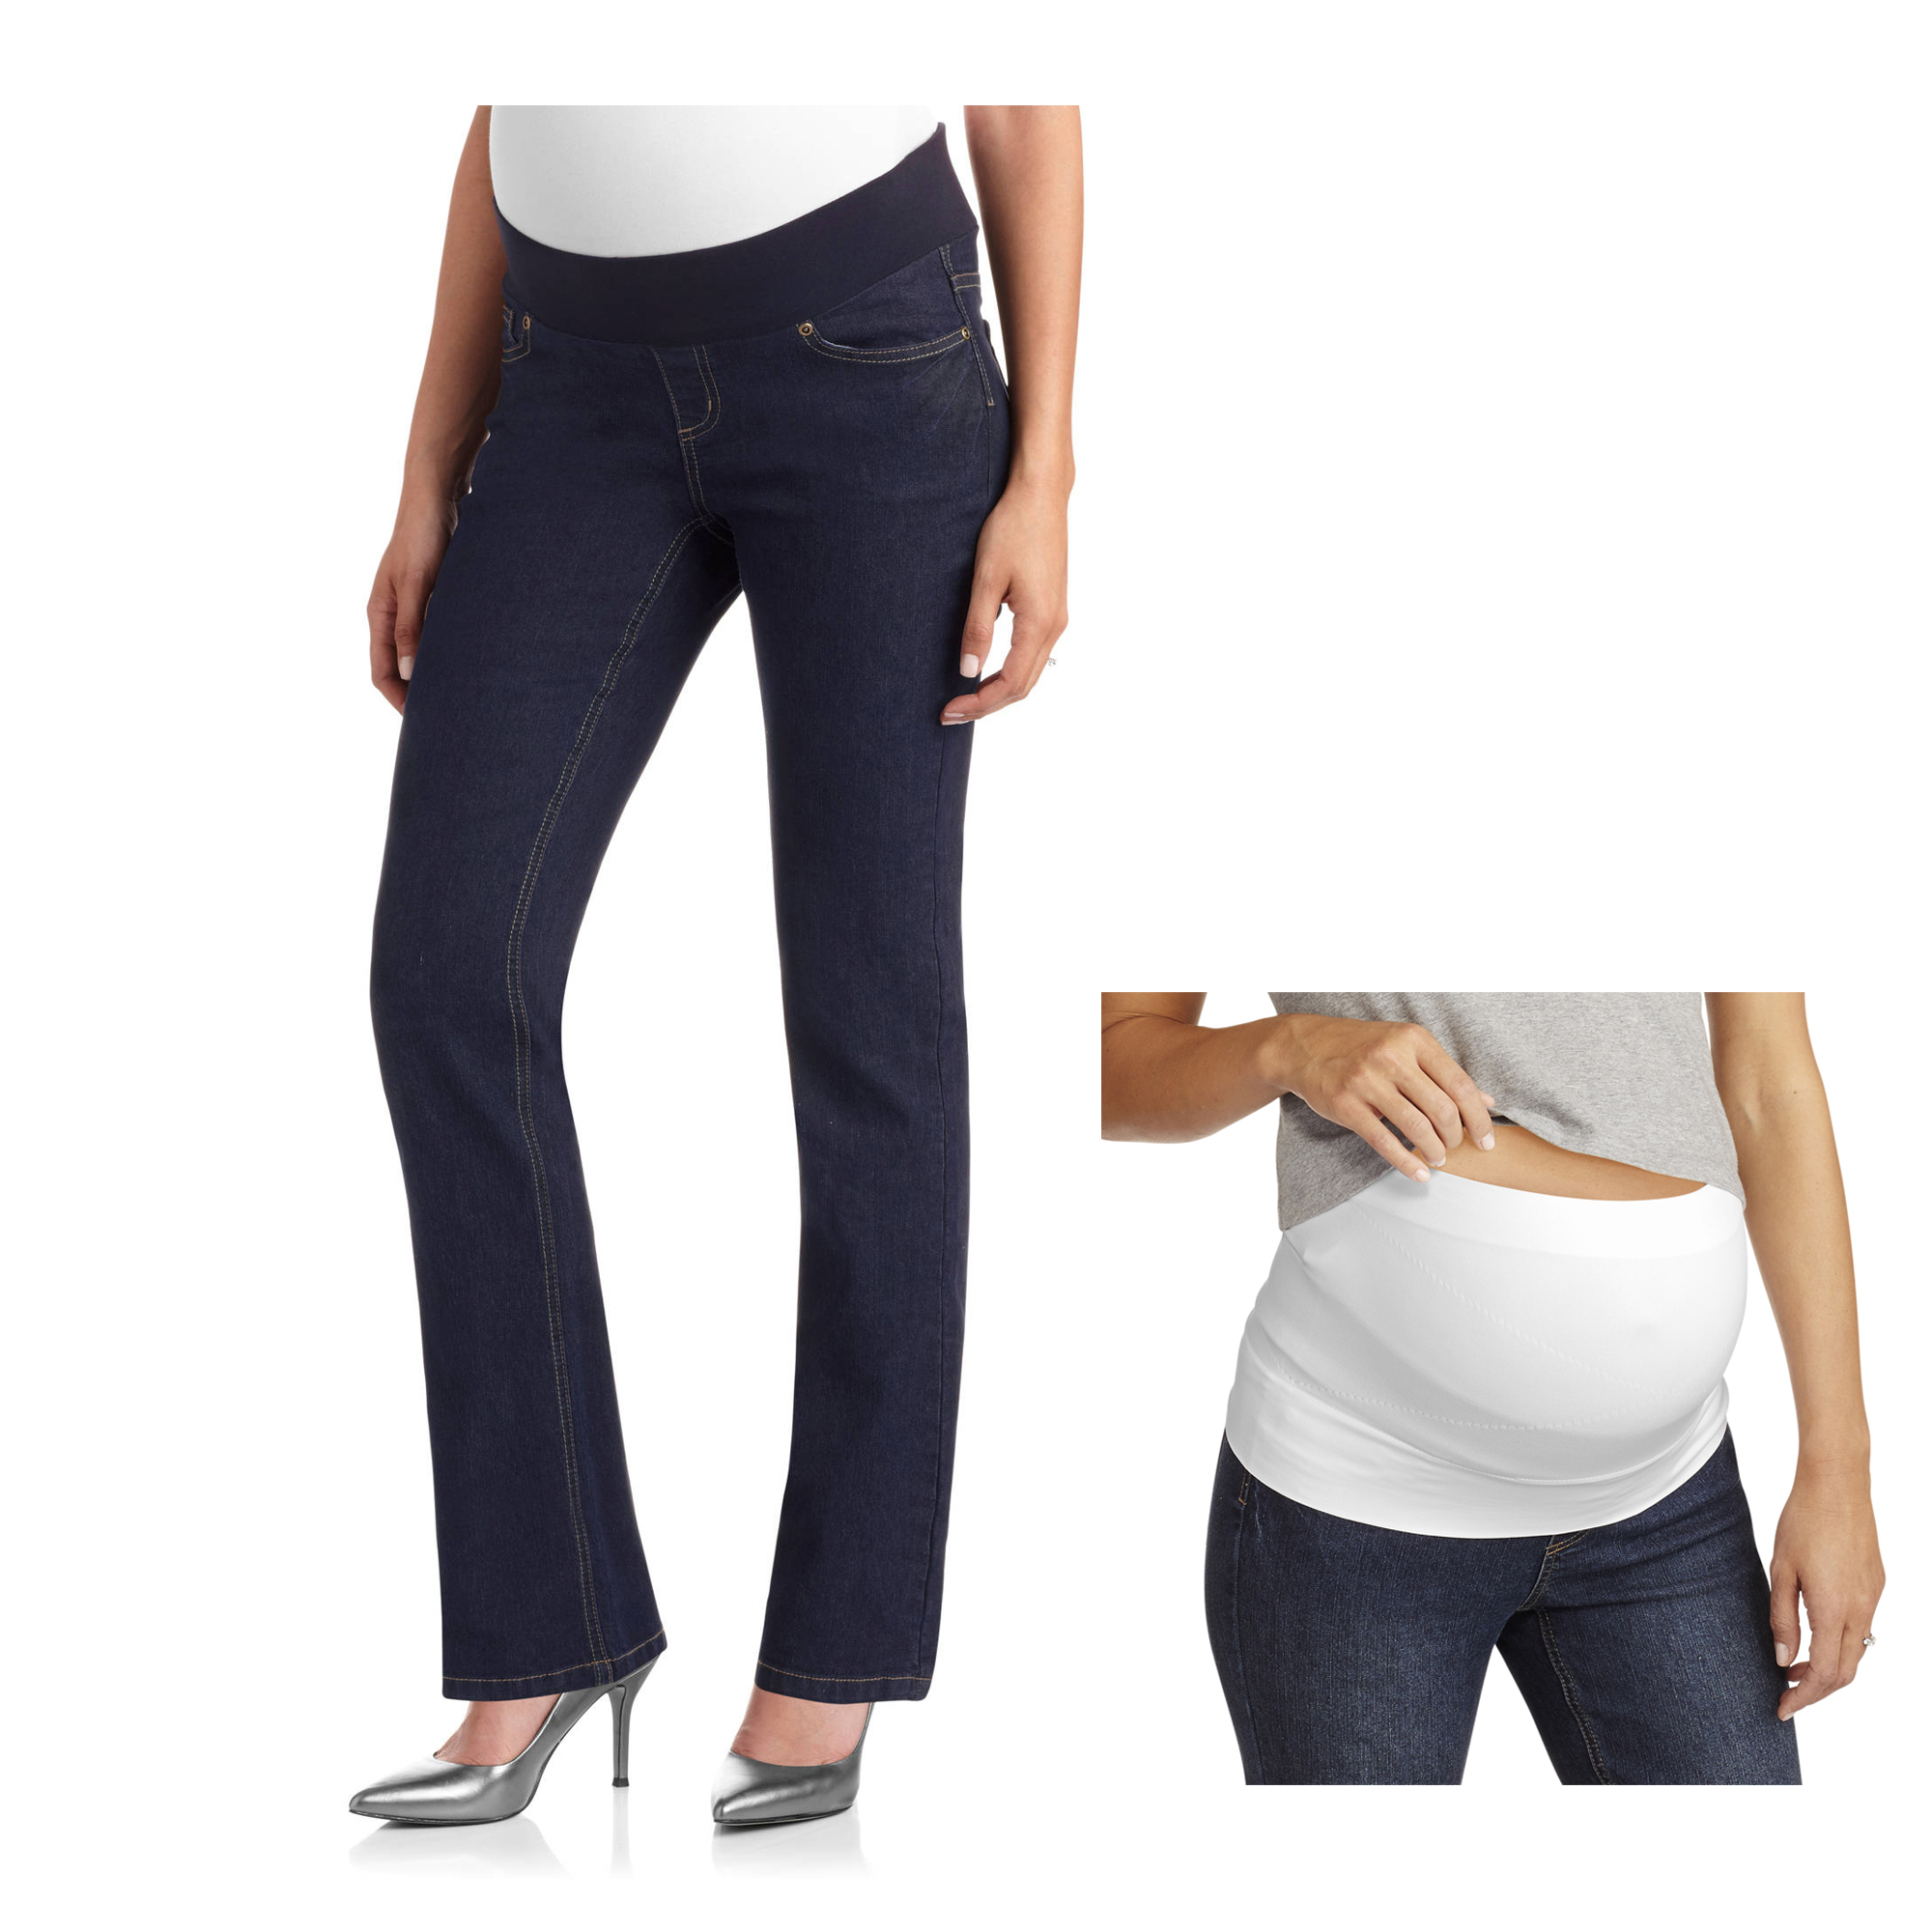 5-Pocket Bootcut Maternity Jeans & Belly Support Band Bundle